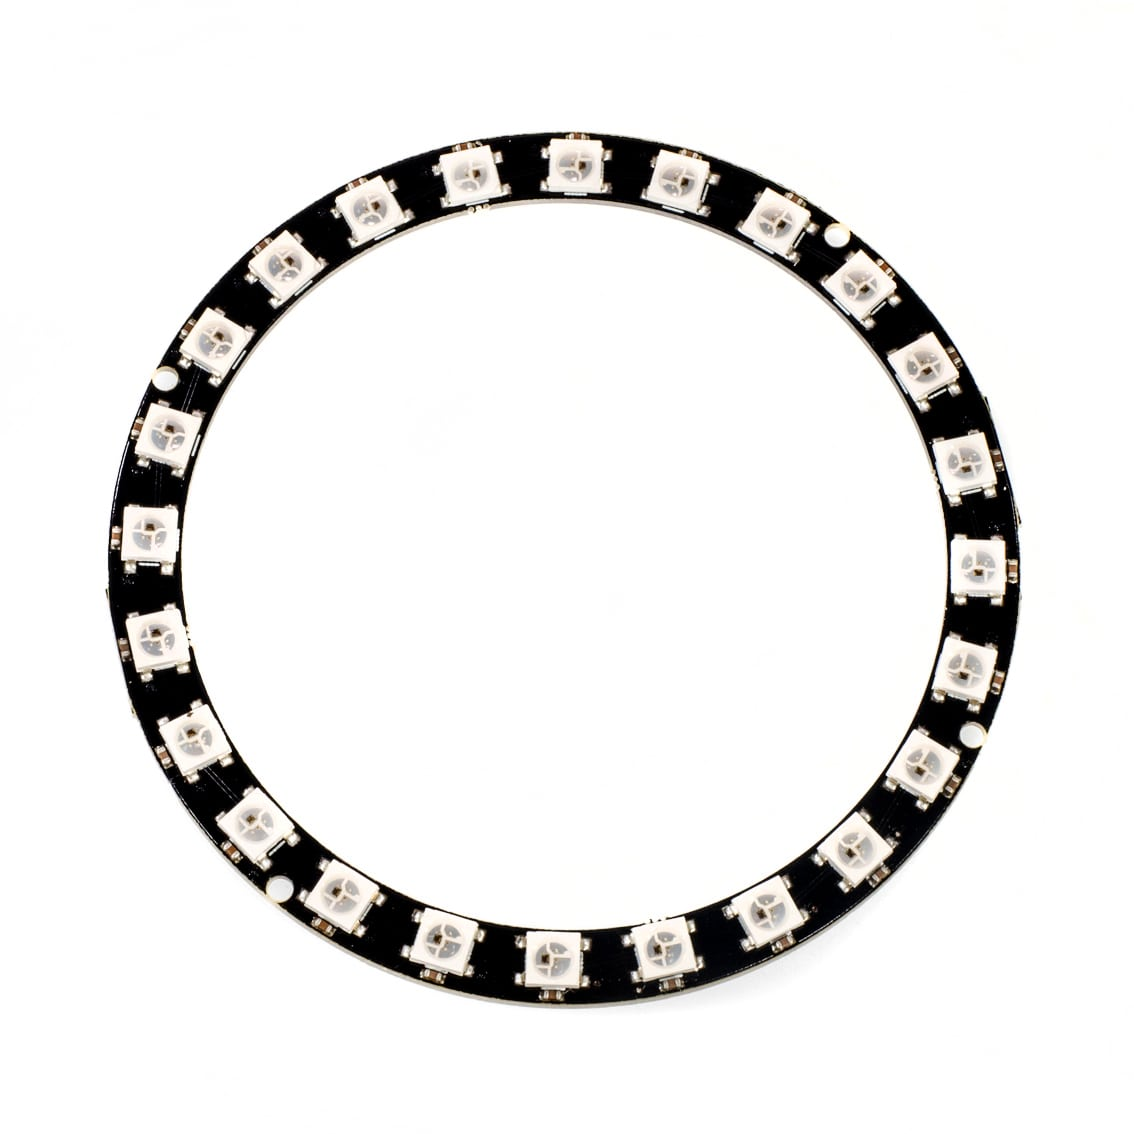 ws2812b 24 light rgb led ring module with integrated